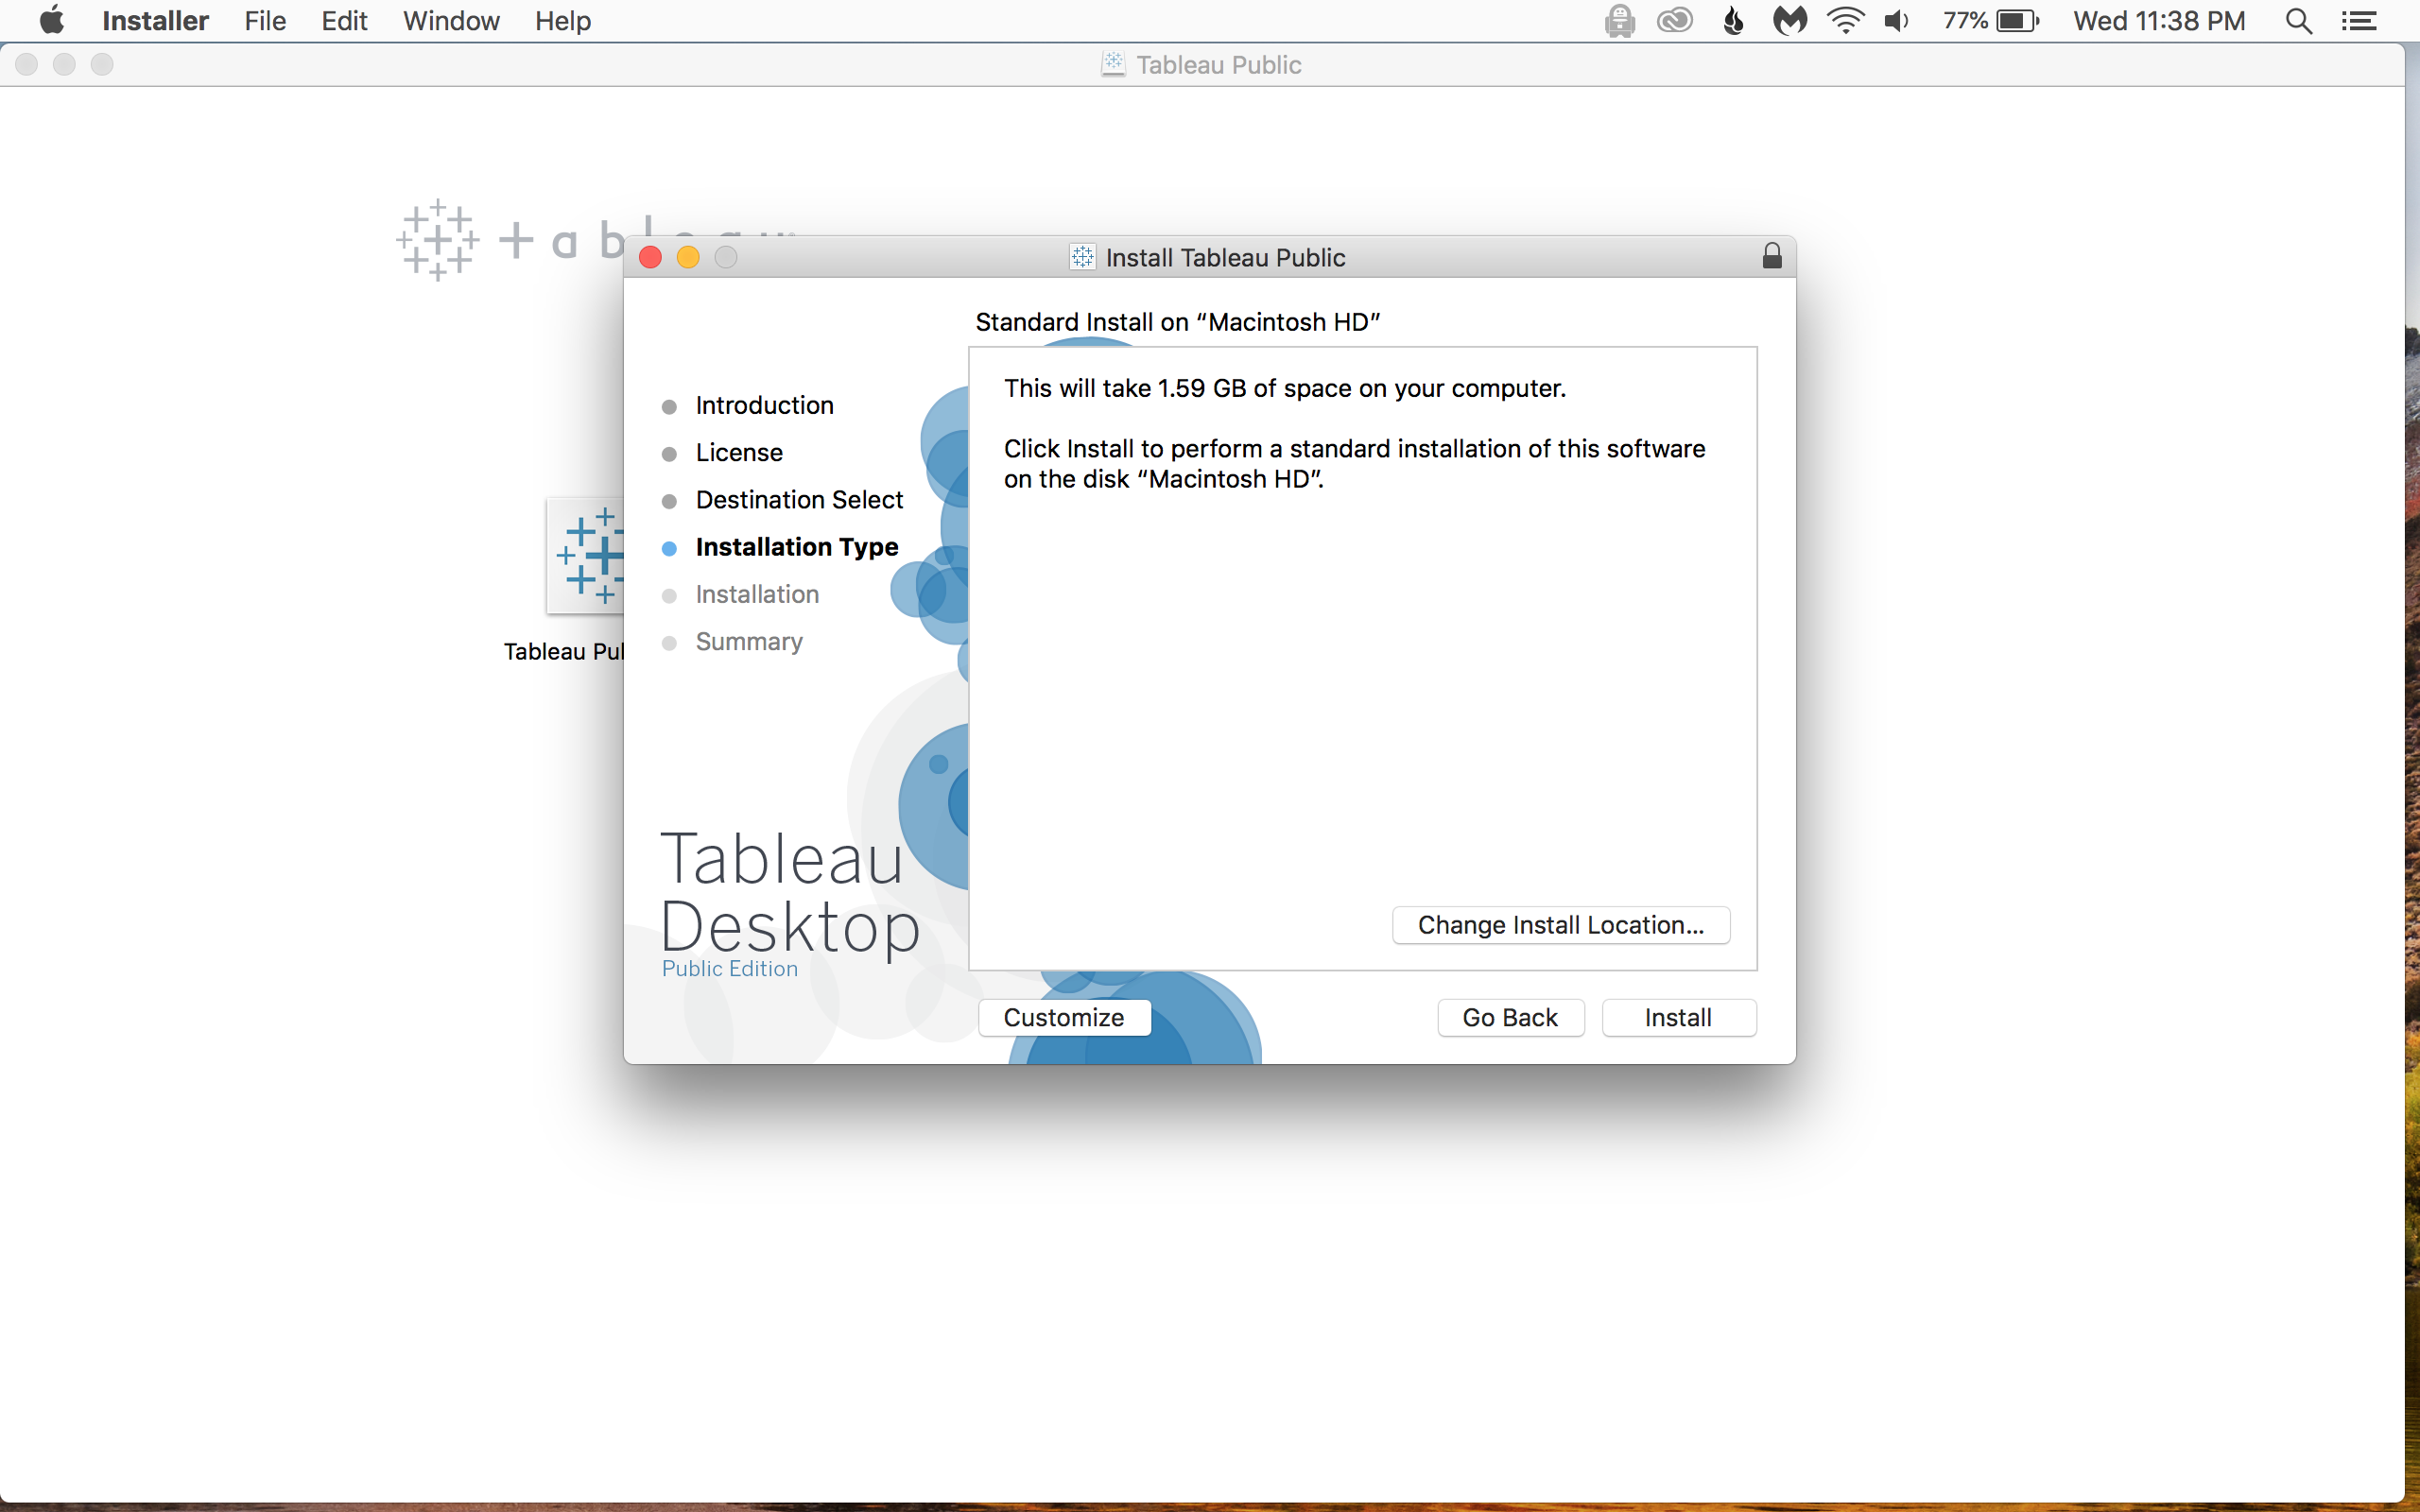 When the download is finished, double click the Tableau Public icon and walk through each step of the installation.